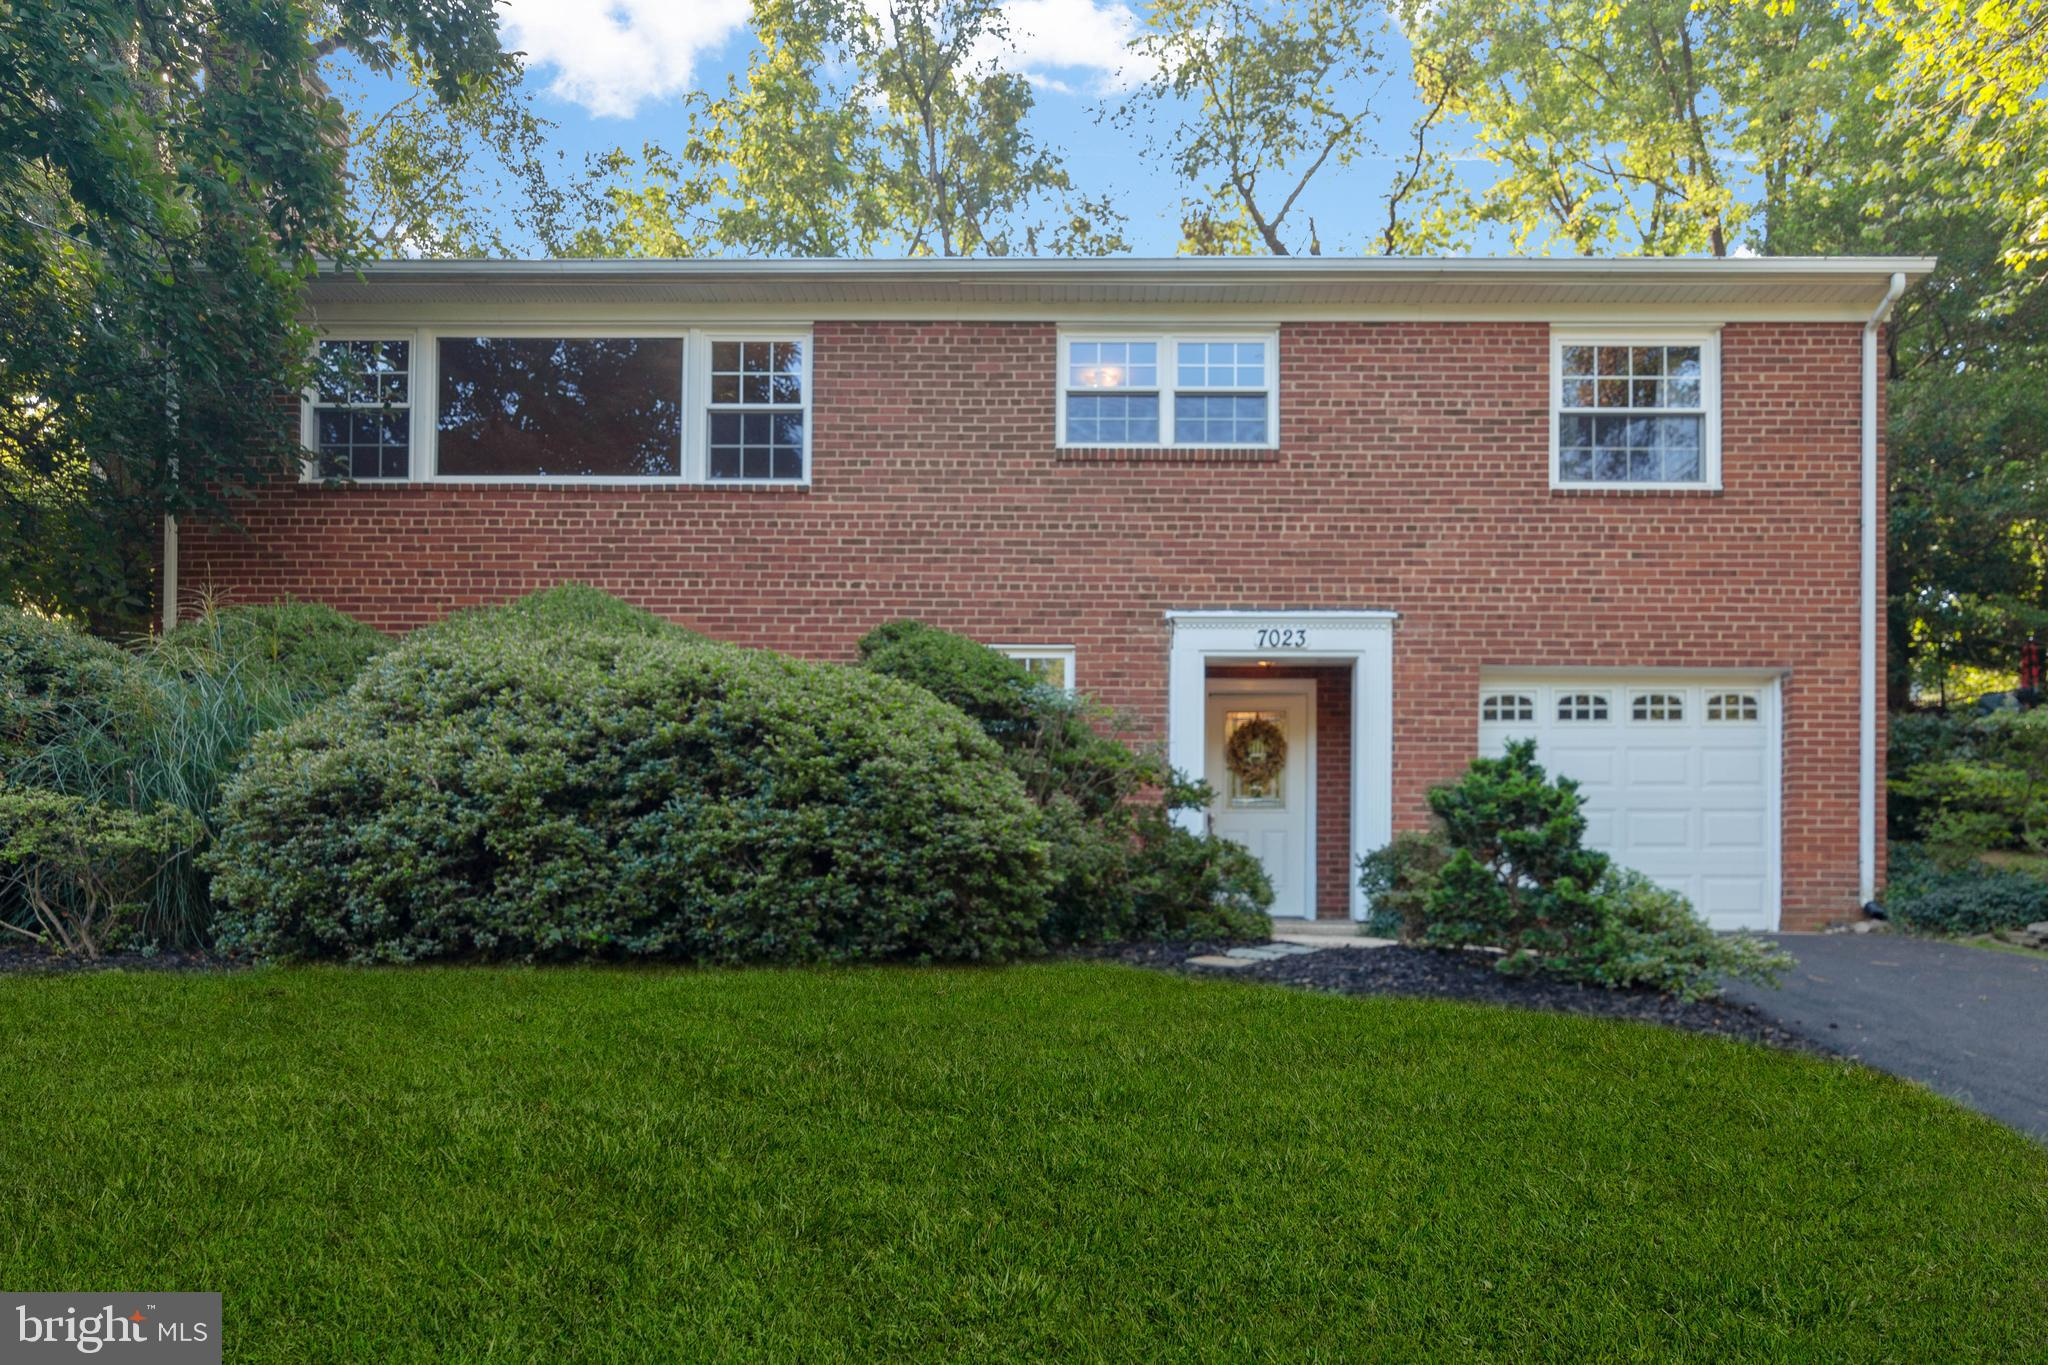 This gorgeous home is move in ready!  New paint, stunning hardwoods, big kitchen, tons of natural light.  Great for entertaining - two fireplaces - amazing screened porch - huge deck - fenced yard!  Newer roof and windows!   Walk to parks, pool, tennis courts, buses, school!